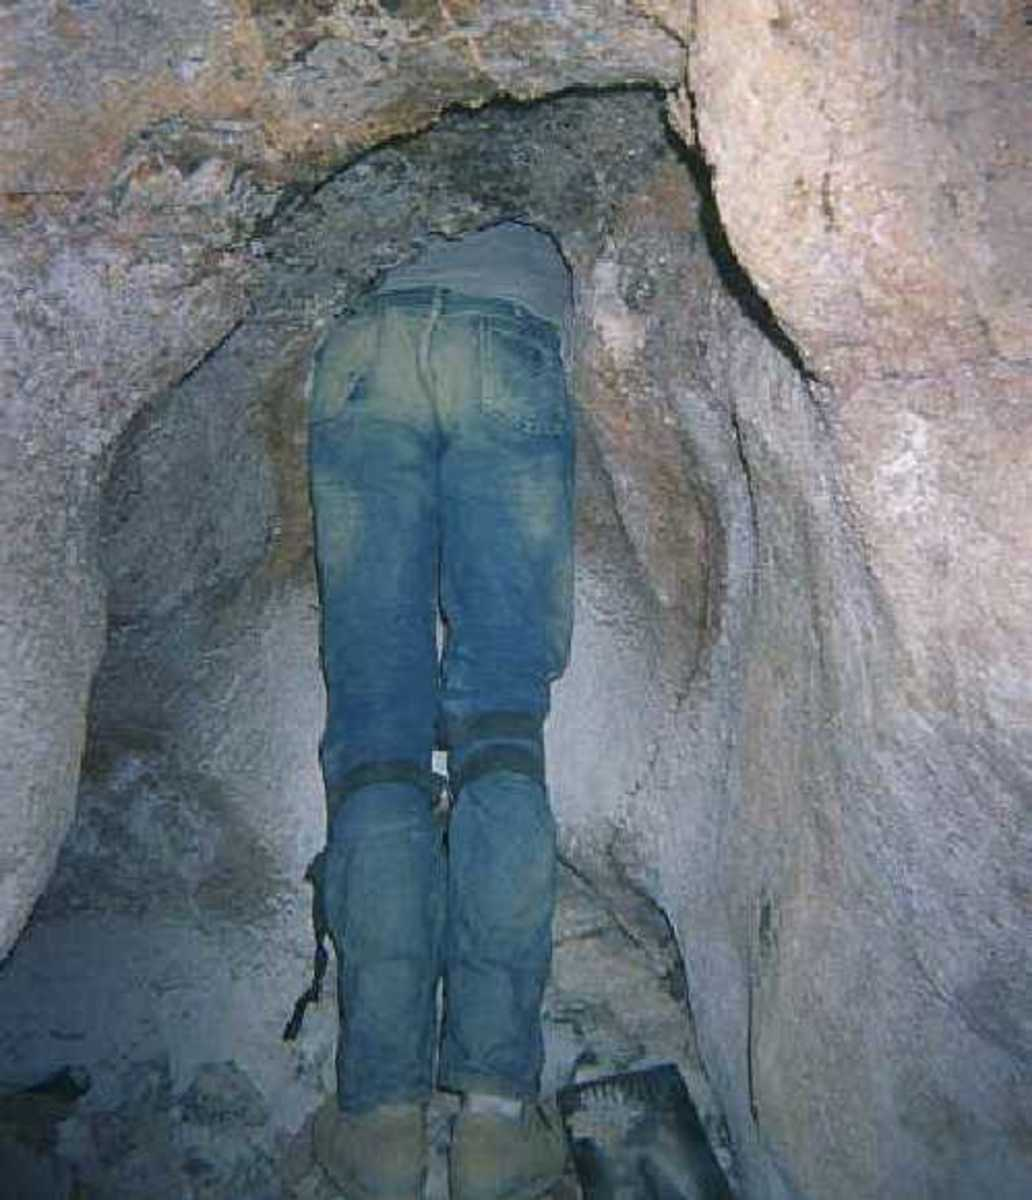 Ted the Caver, fitting himself into the hole that he and a friend opened up to explore an unknown cave.